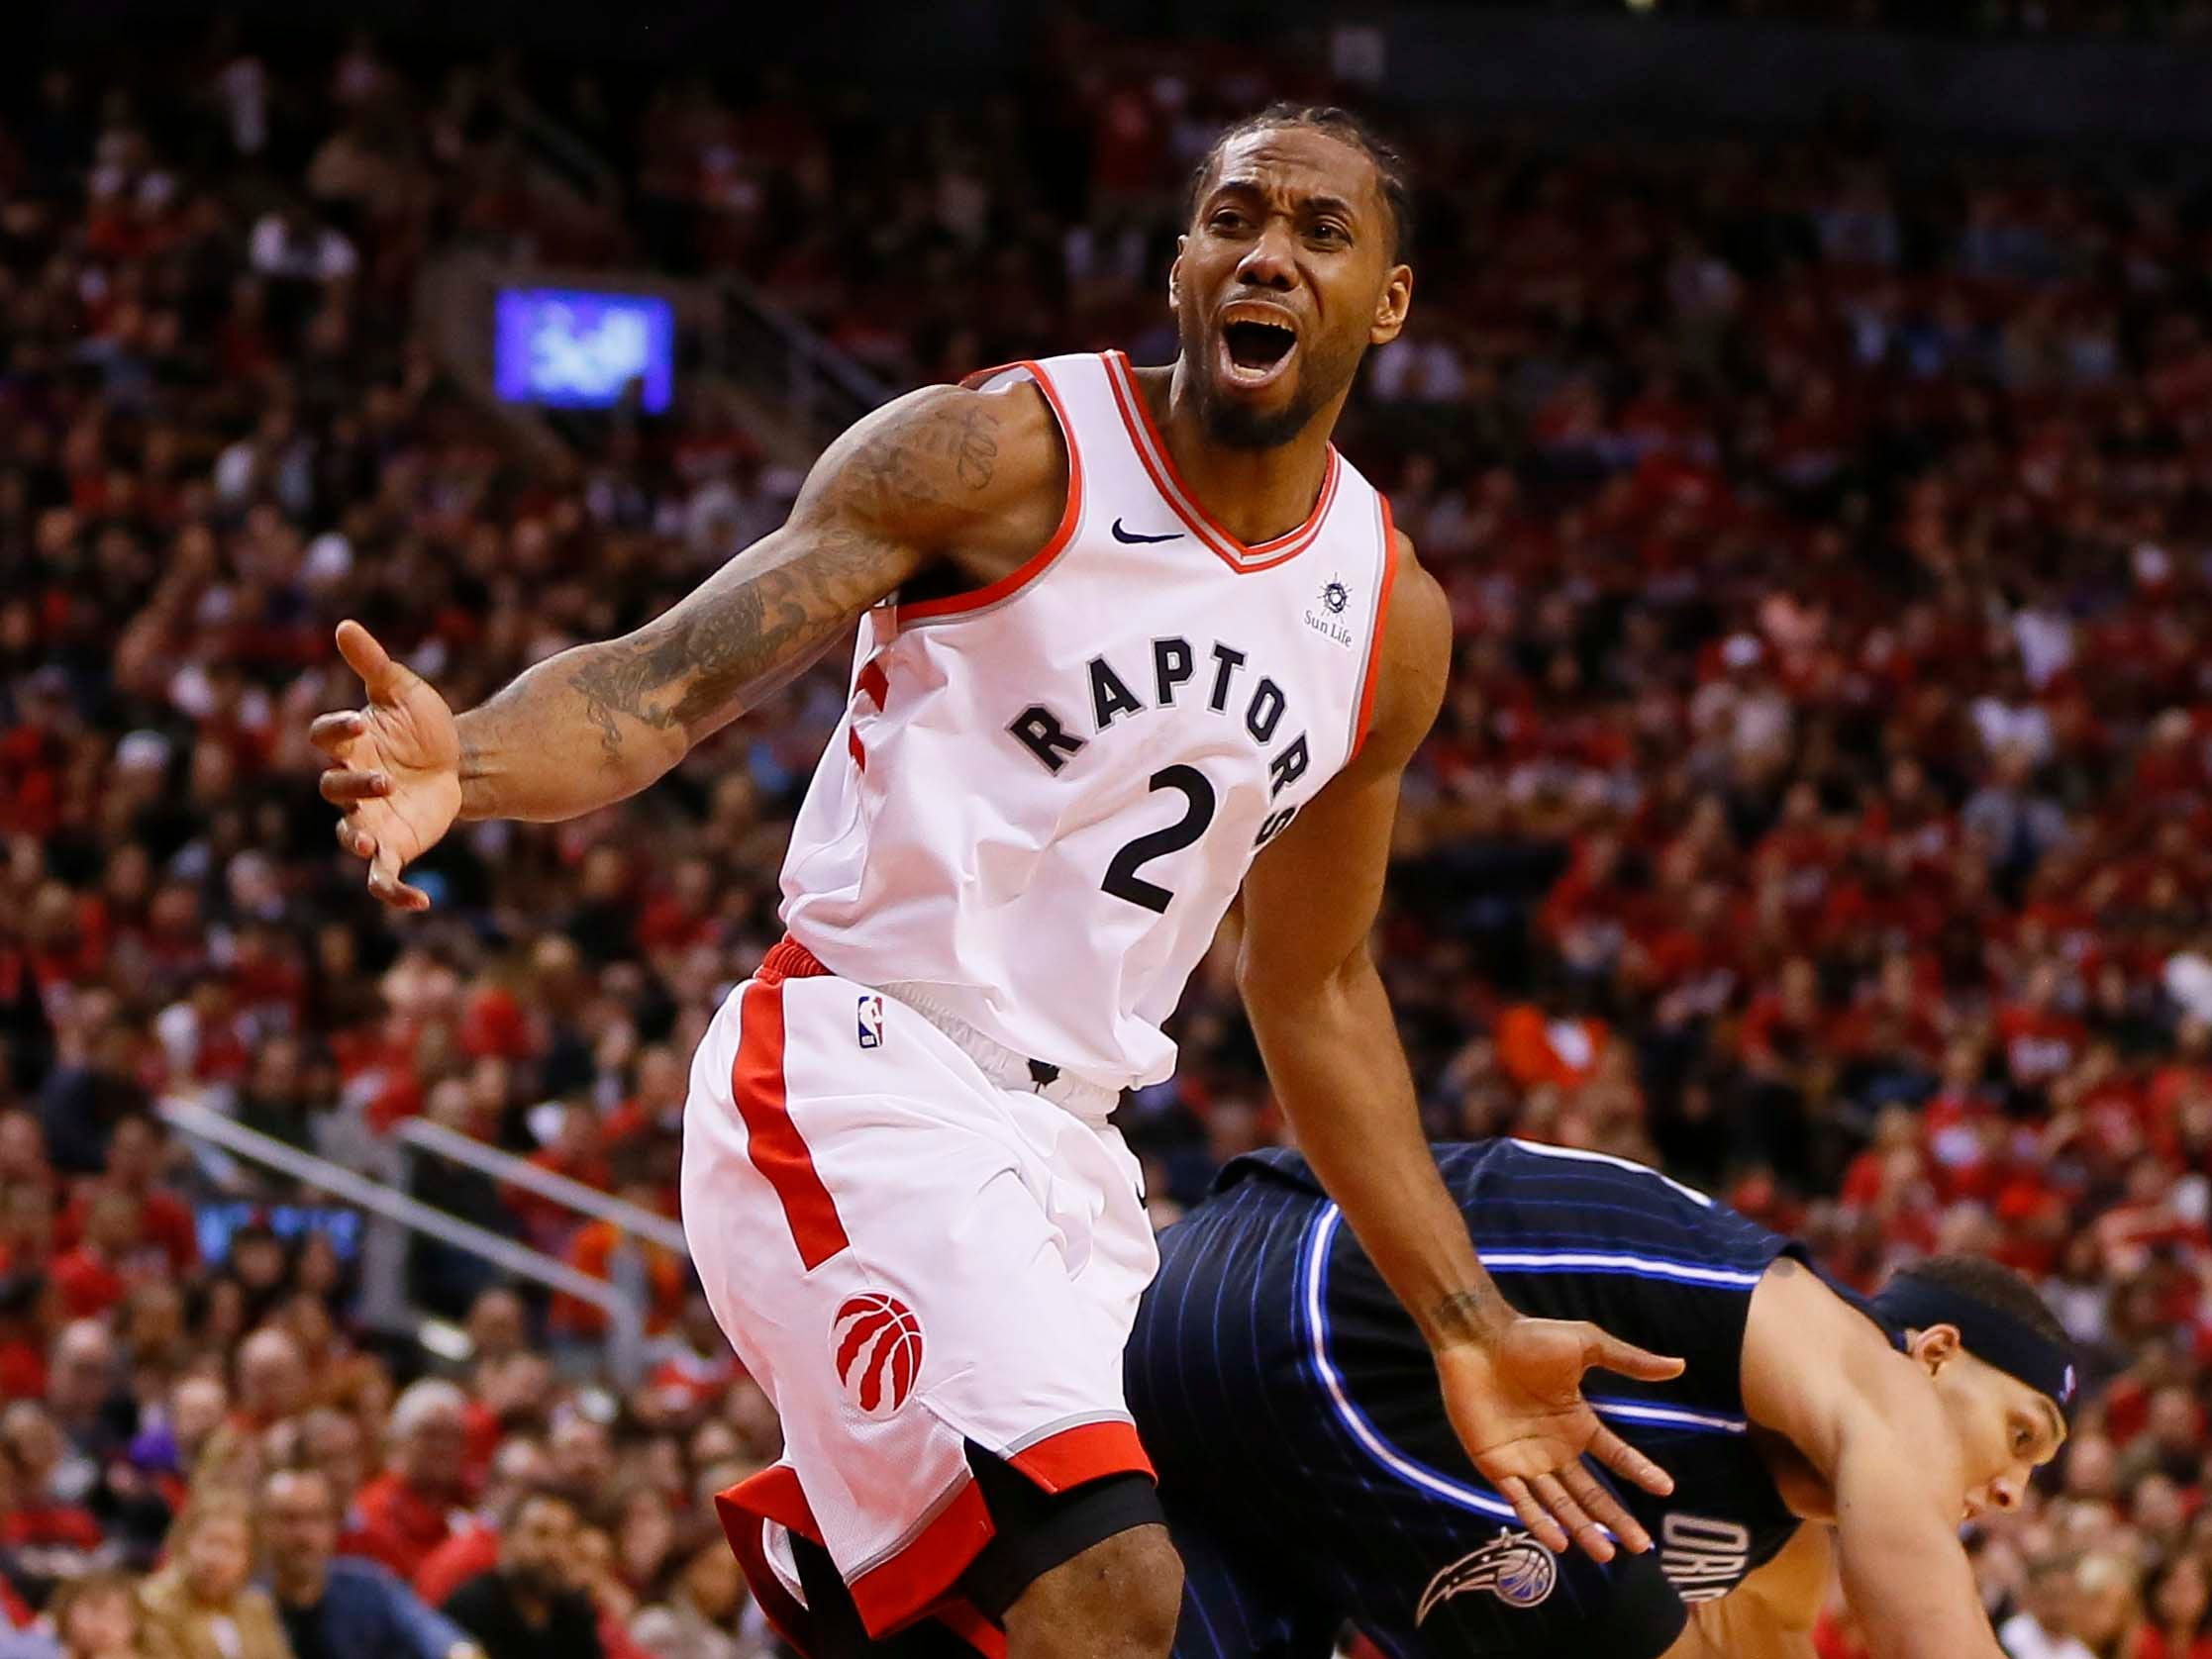 April 13: Raptors forward Kawhi Leonard reacts after a non-call during Game 1 against the Magic.